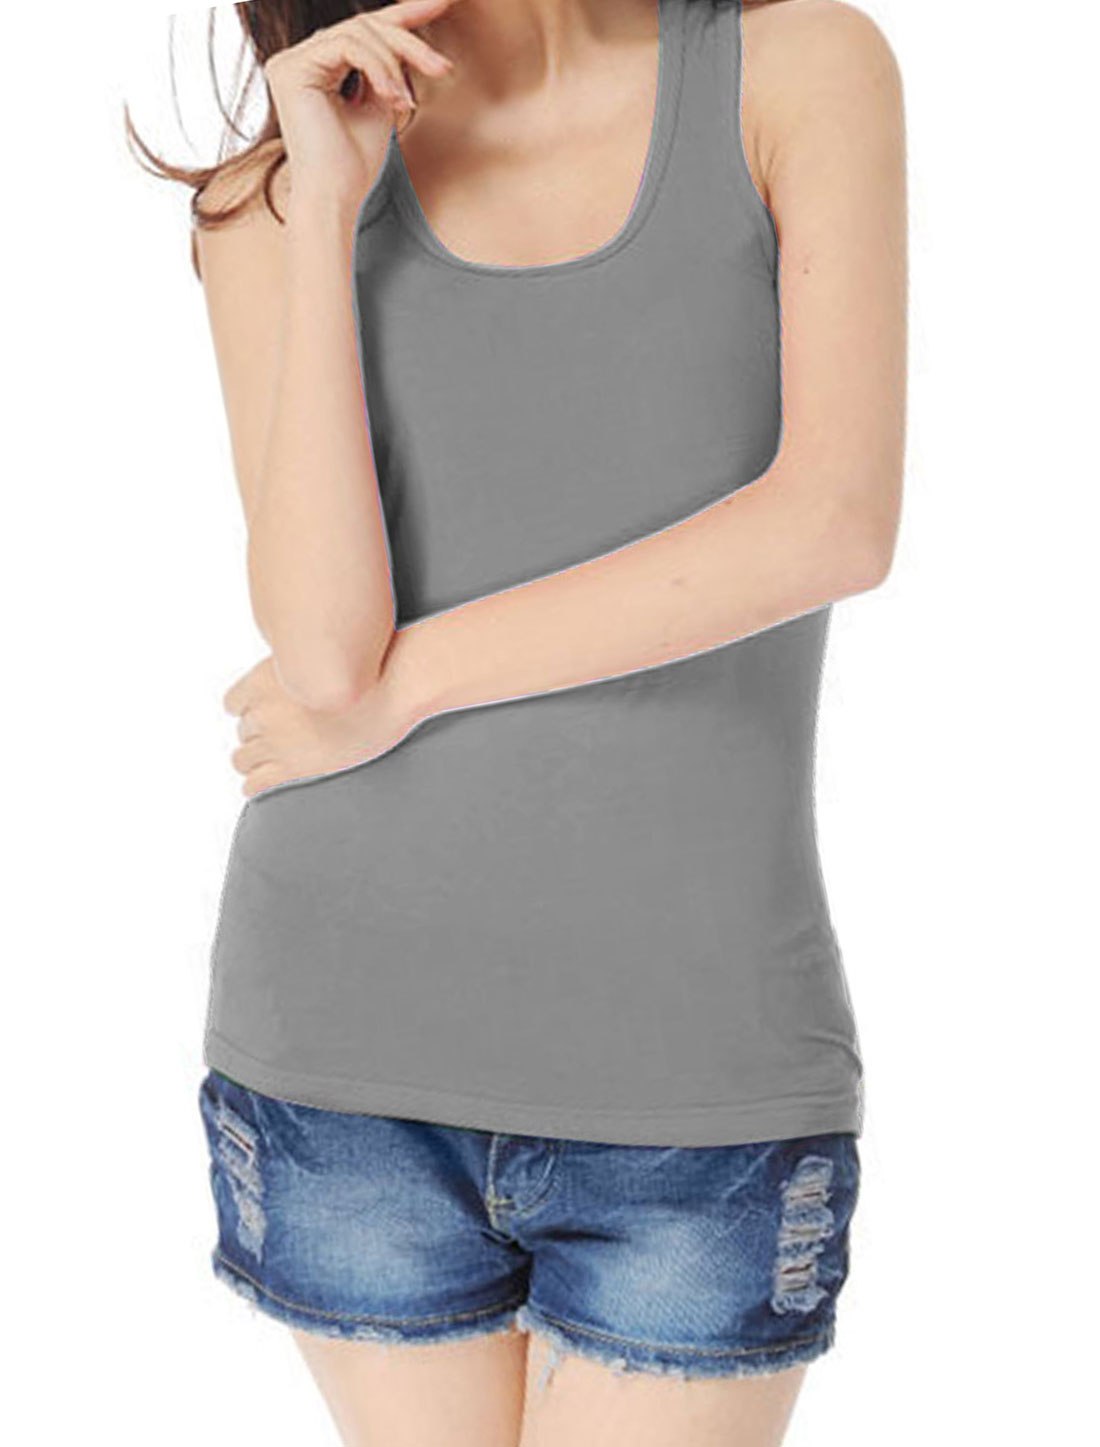 U Neck Ribbed Gray Stretchy Racerback Tank Top Shirt XS for Women